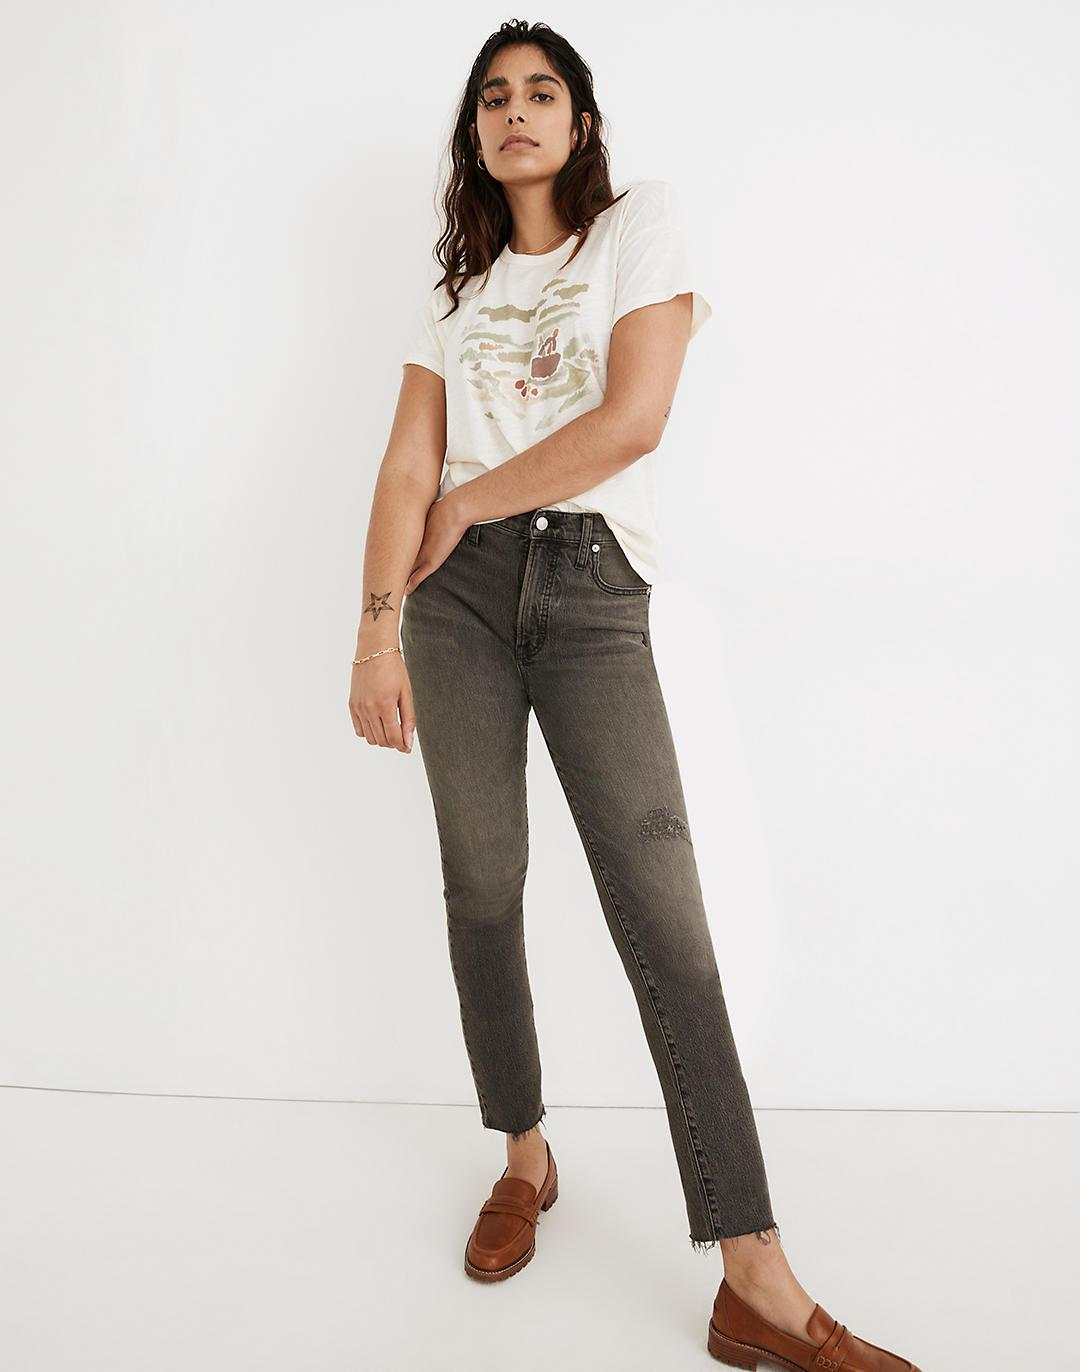 The Tall Perfect Vintage Jean in Cosner Wash: Knee-Rip Edition